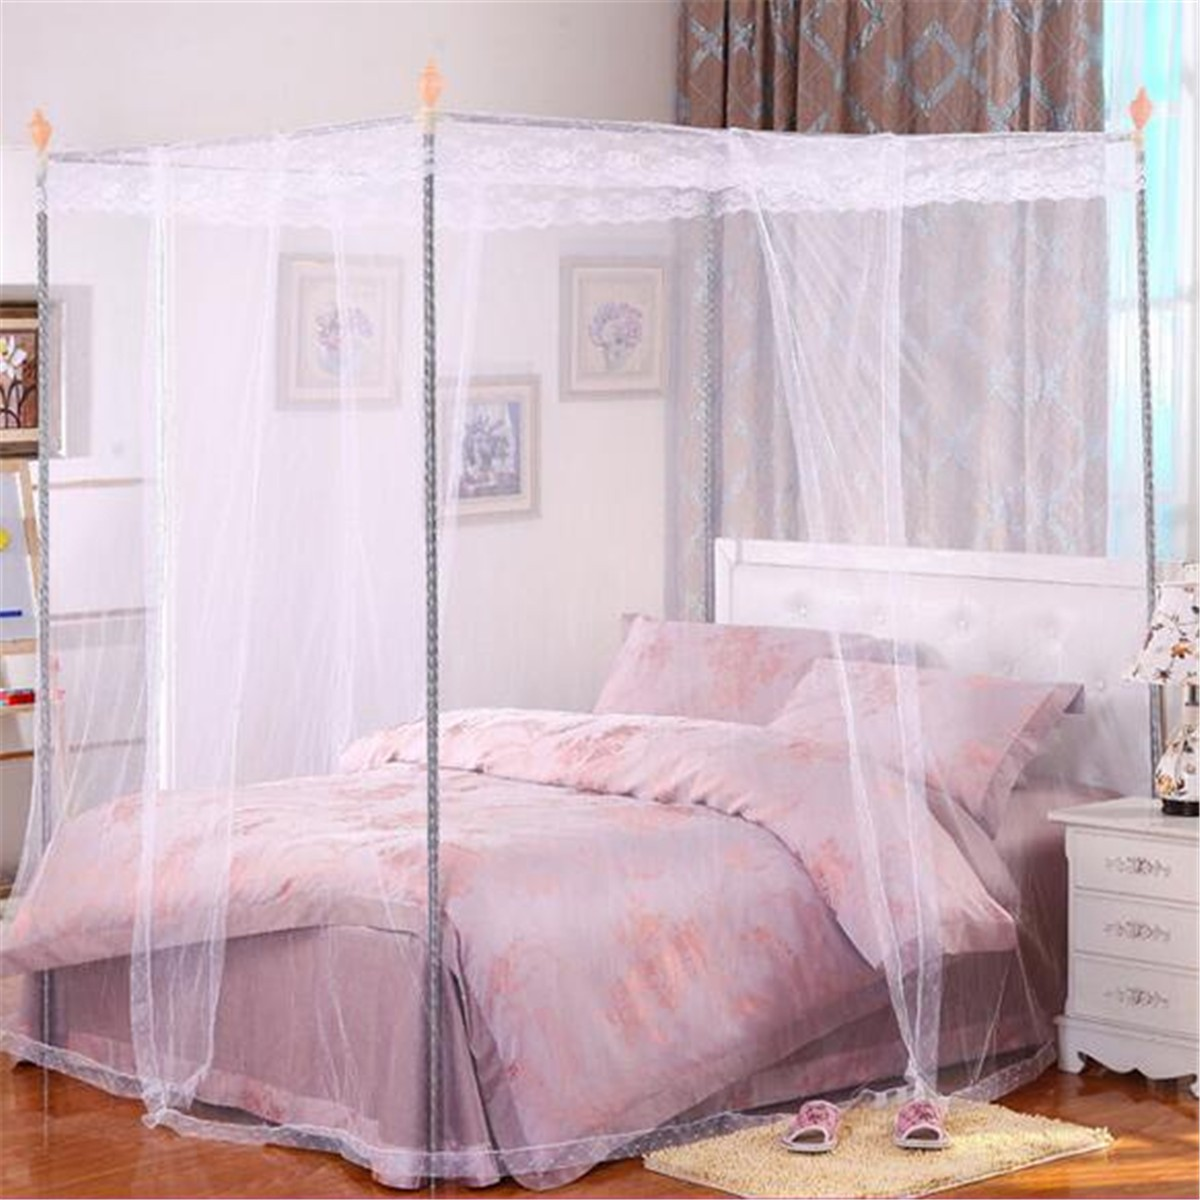 Curtain Beds online get cheap curtains beds -aliexpress | alibaba group